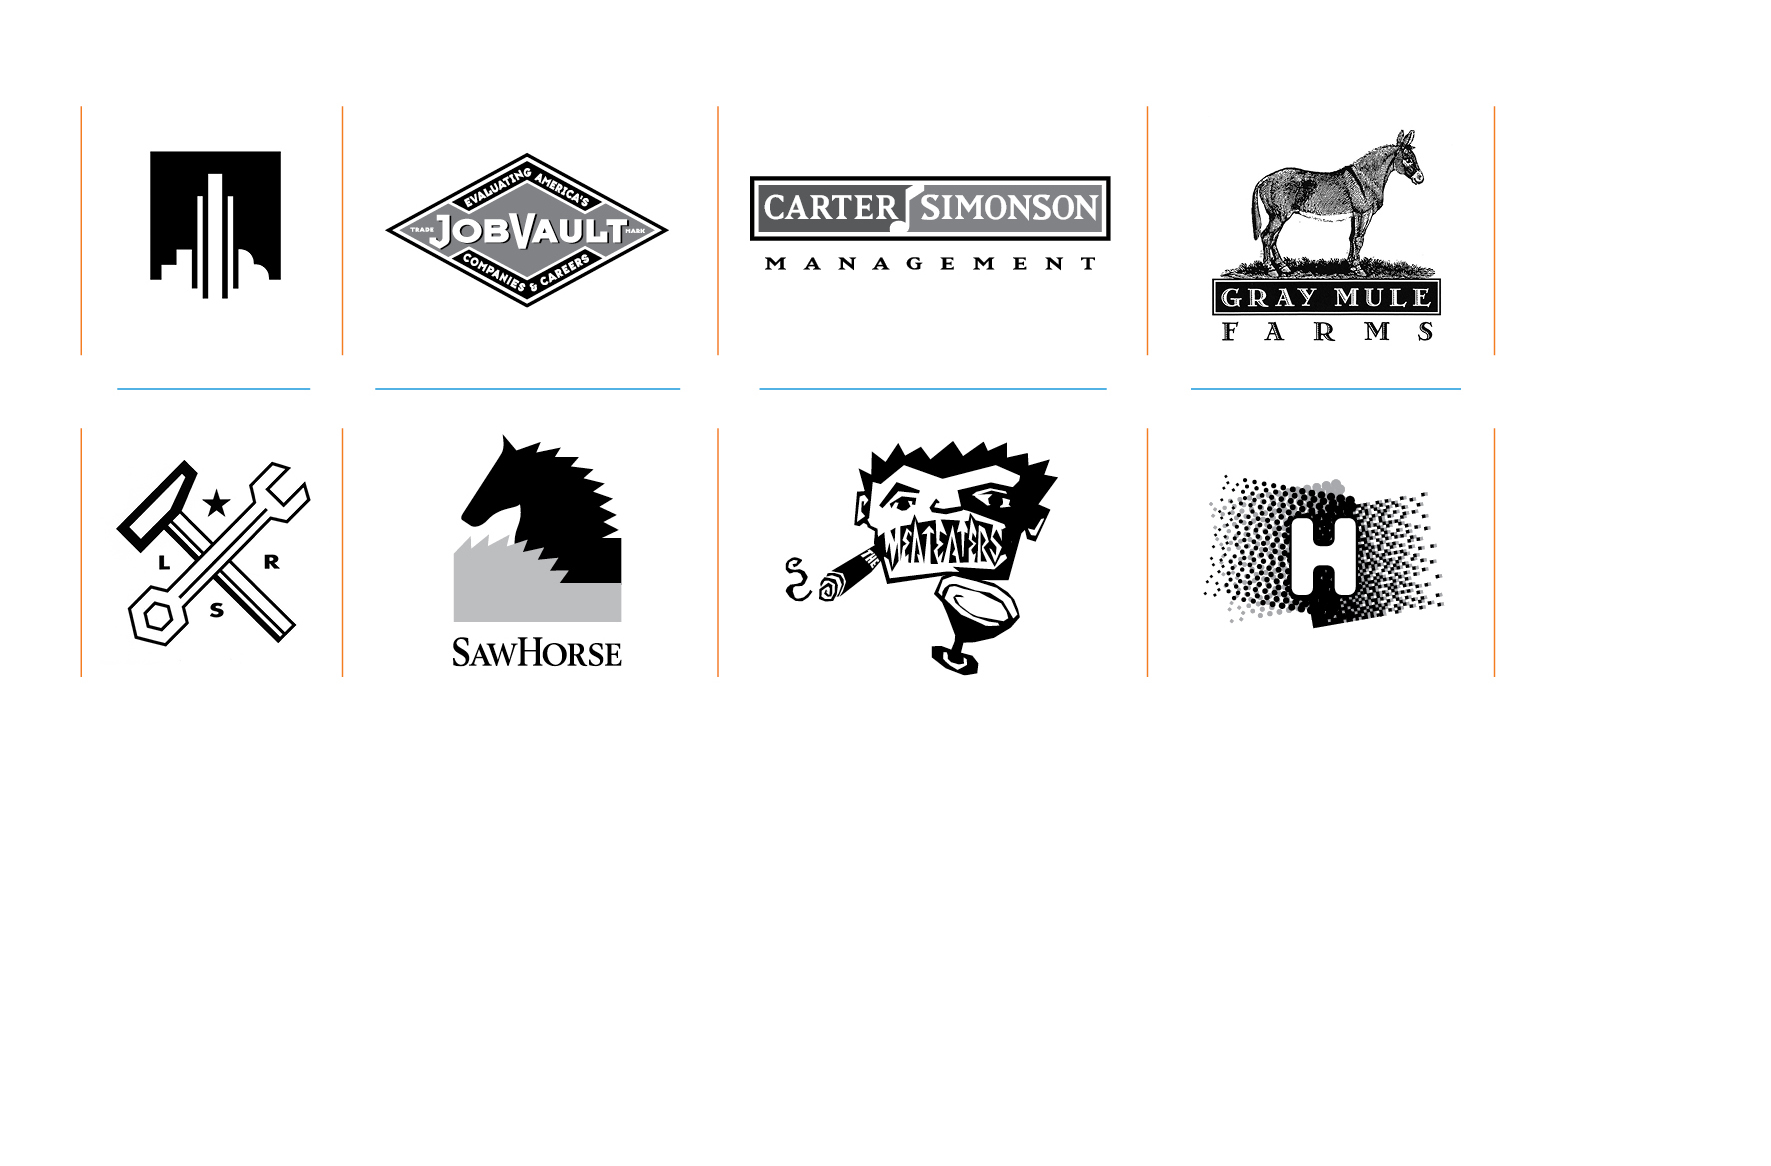 Logos and branding -   Ansley Above the Park, Jobvault, Carter Simonson, Gray Mule Farms, LRS, Sawhorse, The Meateaters, Hardscrabble Projects